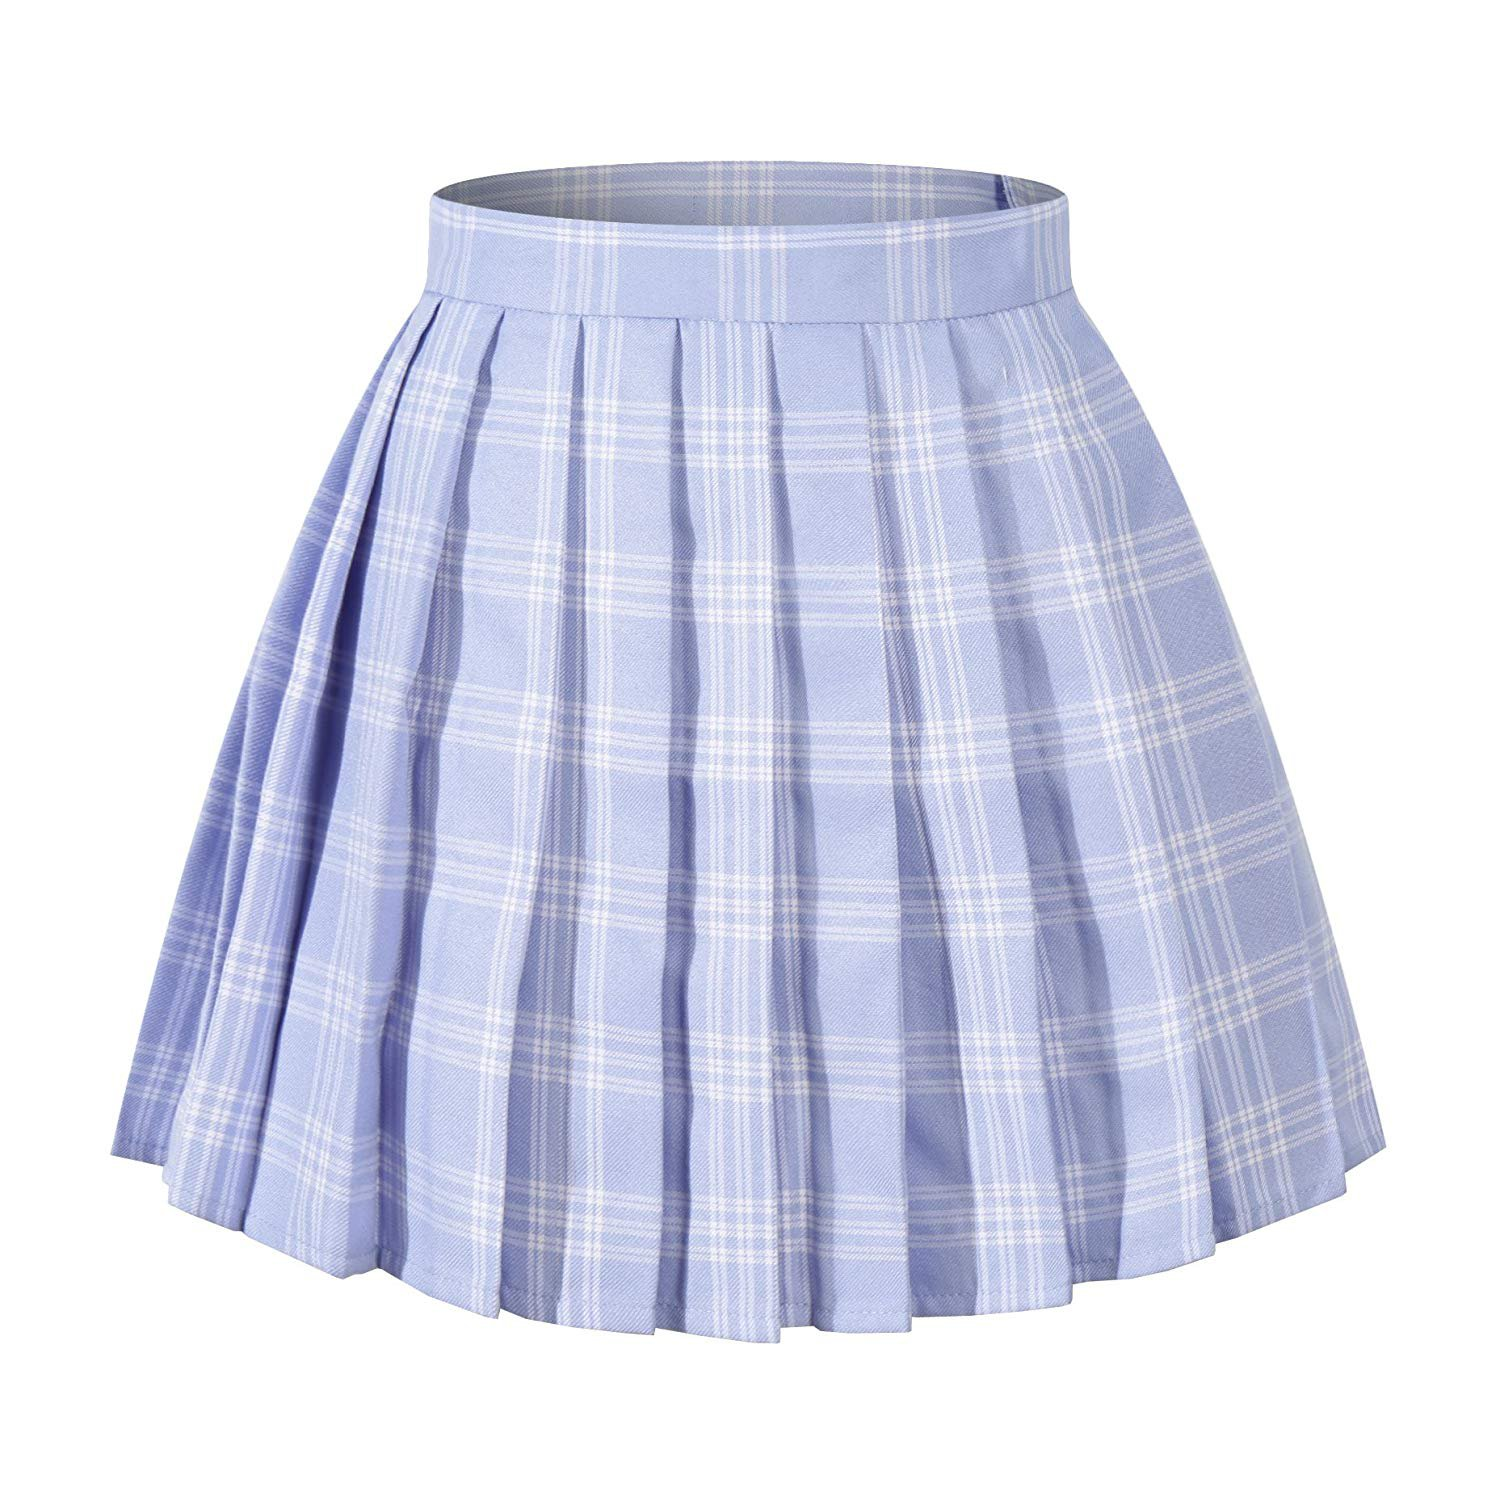 High Waisted Pleated Skirt - Blue Mixed White